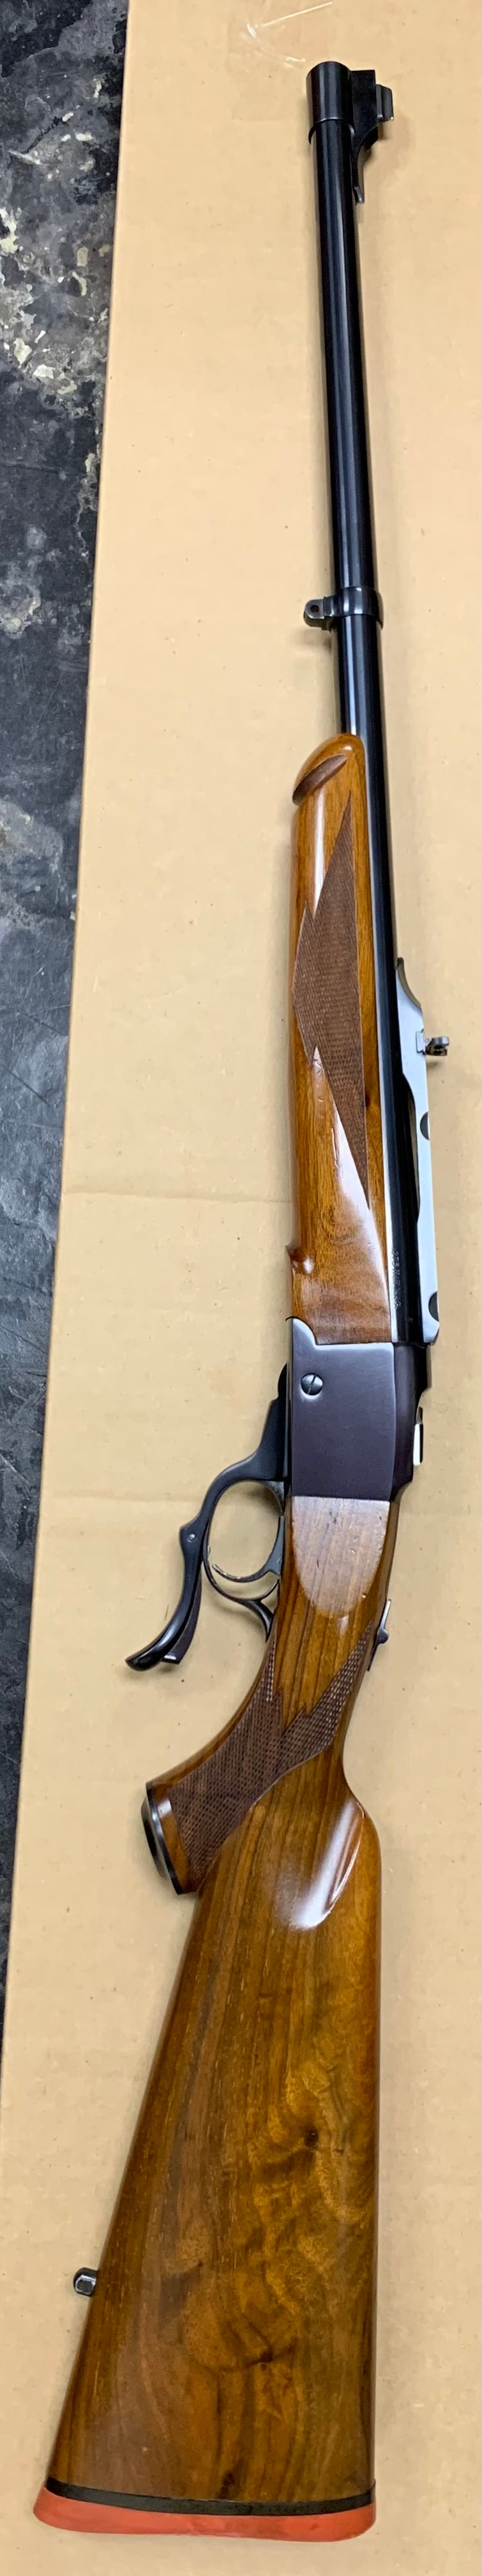 RUGER NO. 1 TROPICAL RIFLE